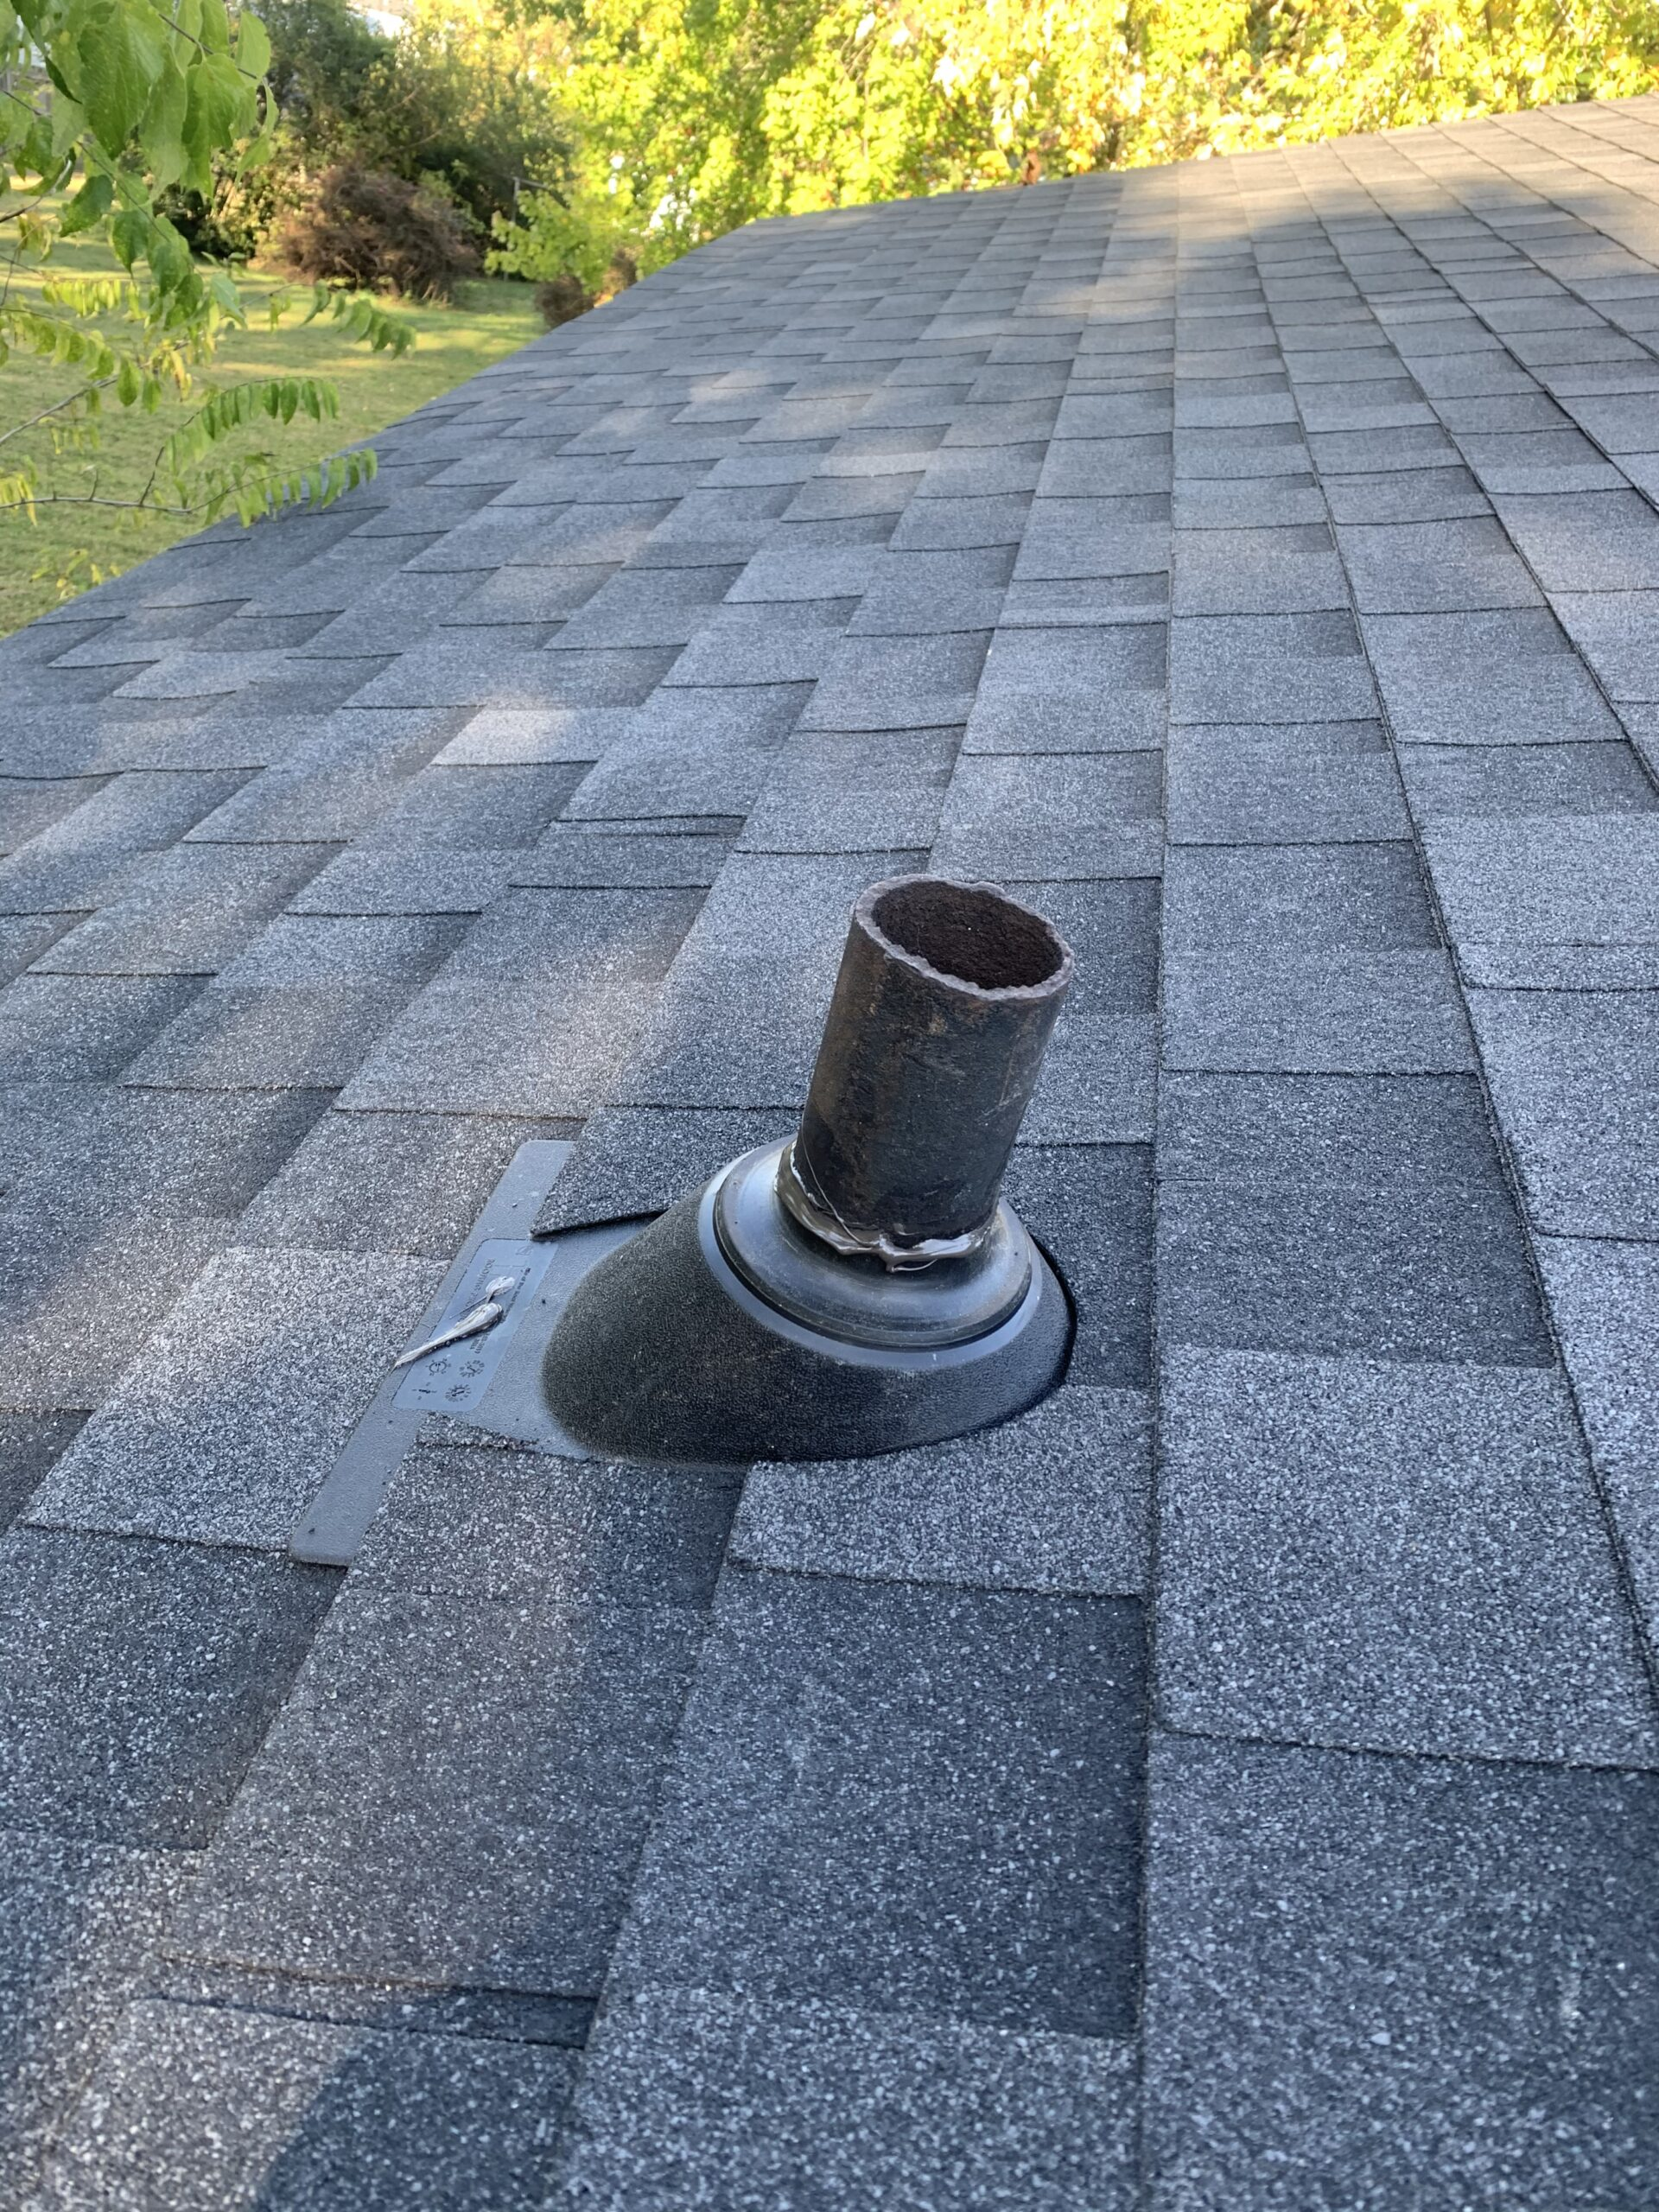 New pipe boots on new roof